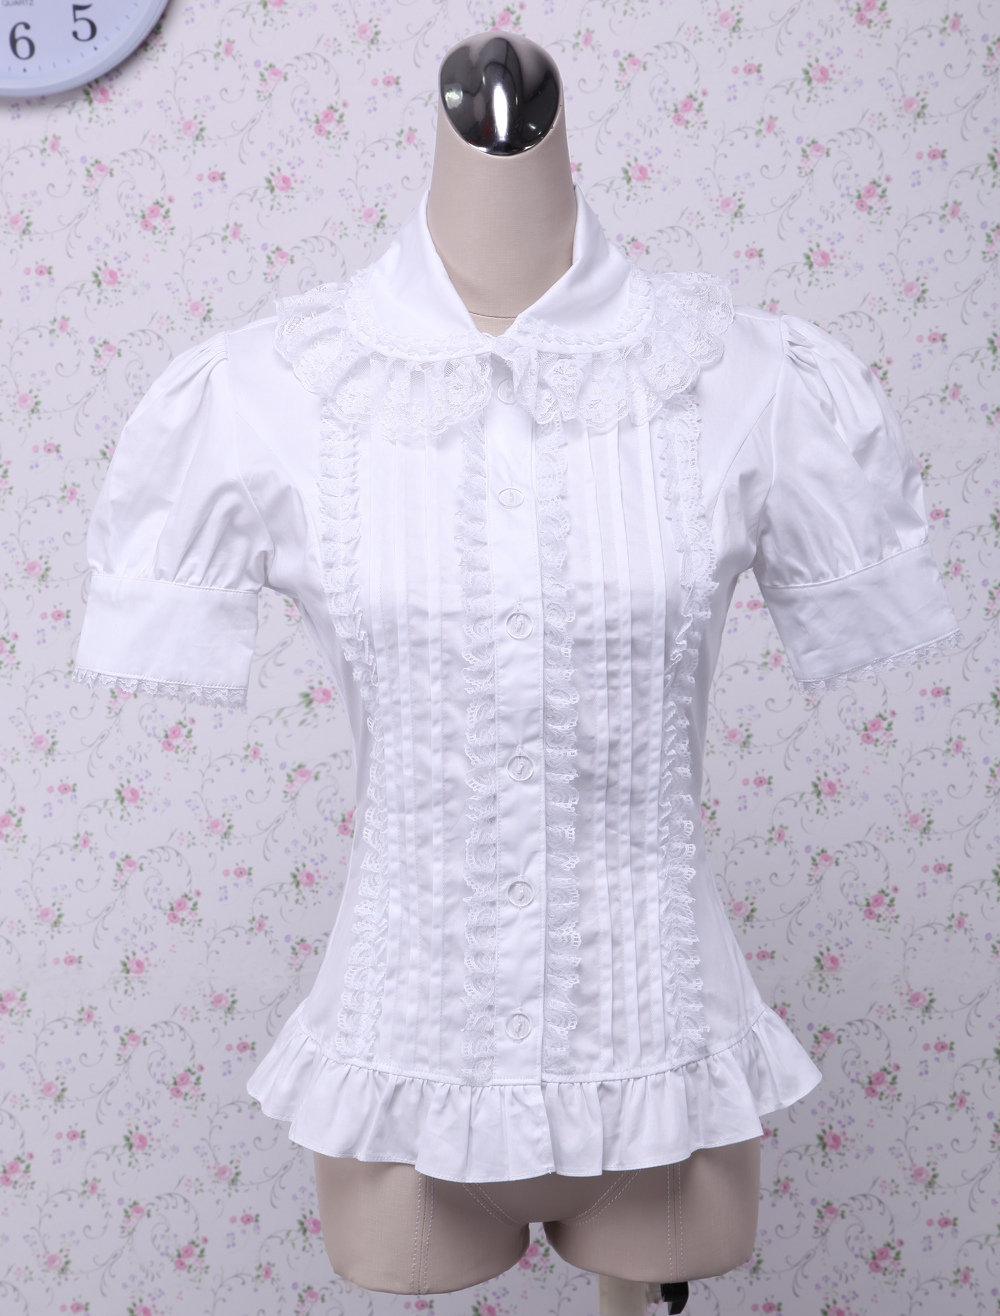 Buy White Cotton Lolita Blouse Short Sleeves Layered Lace Trim Ruffles for $46.99 in Milanoo store